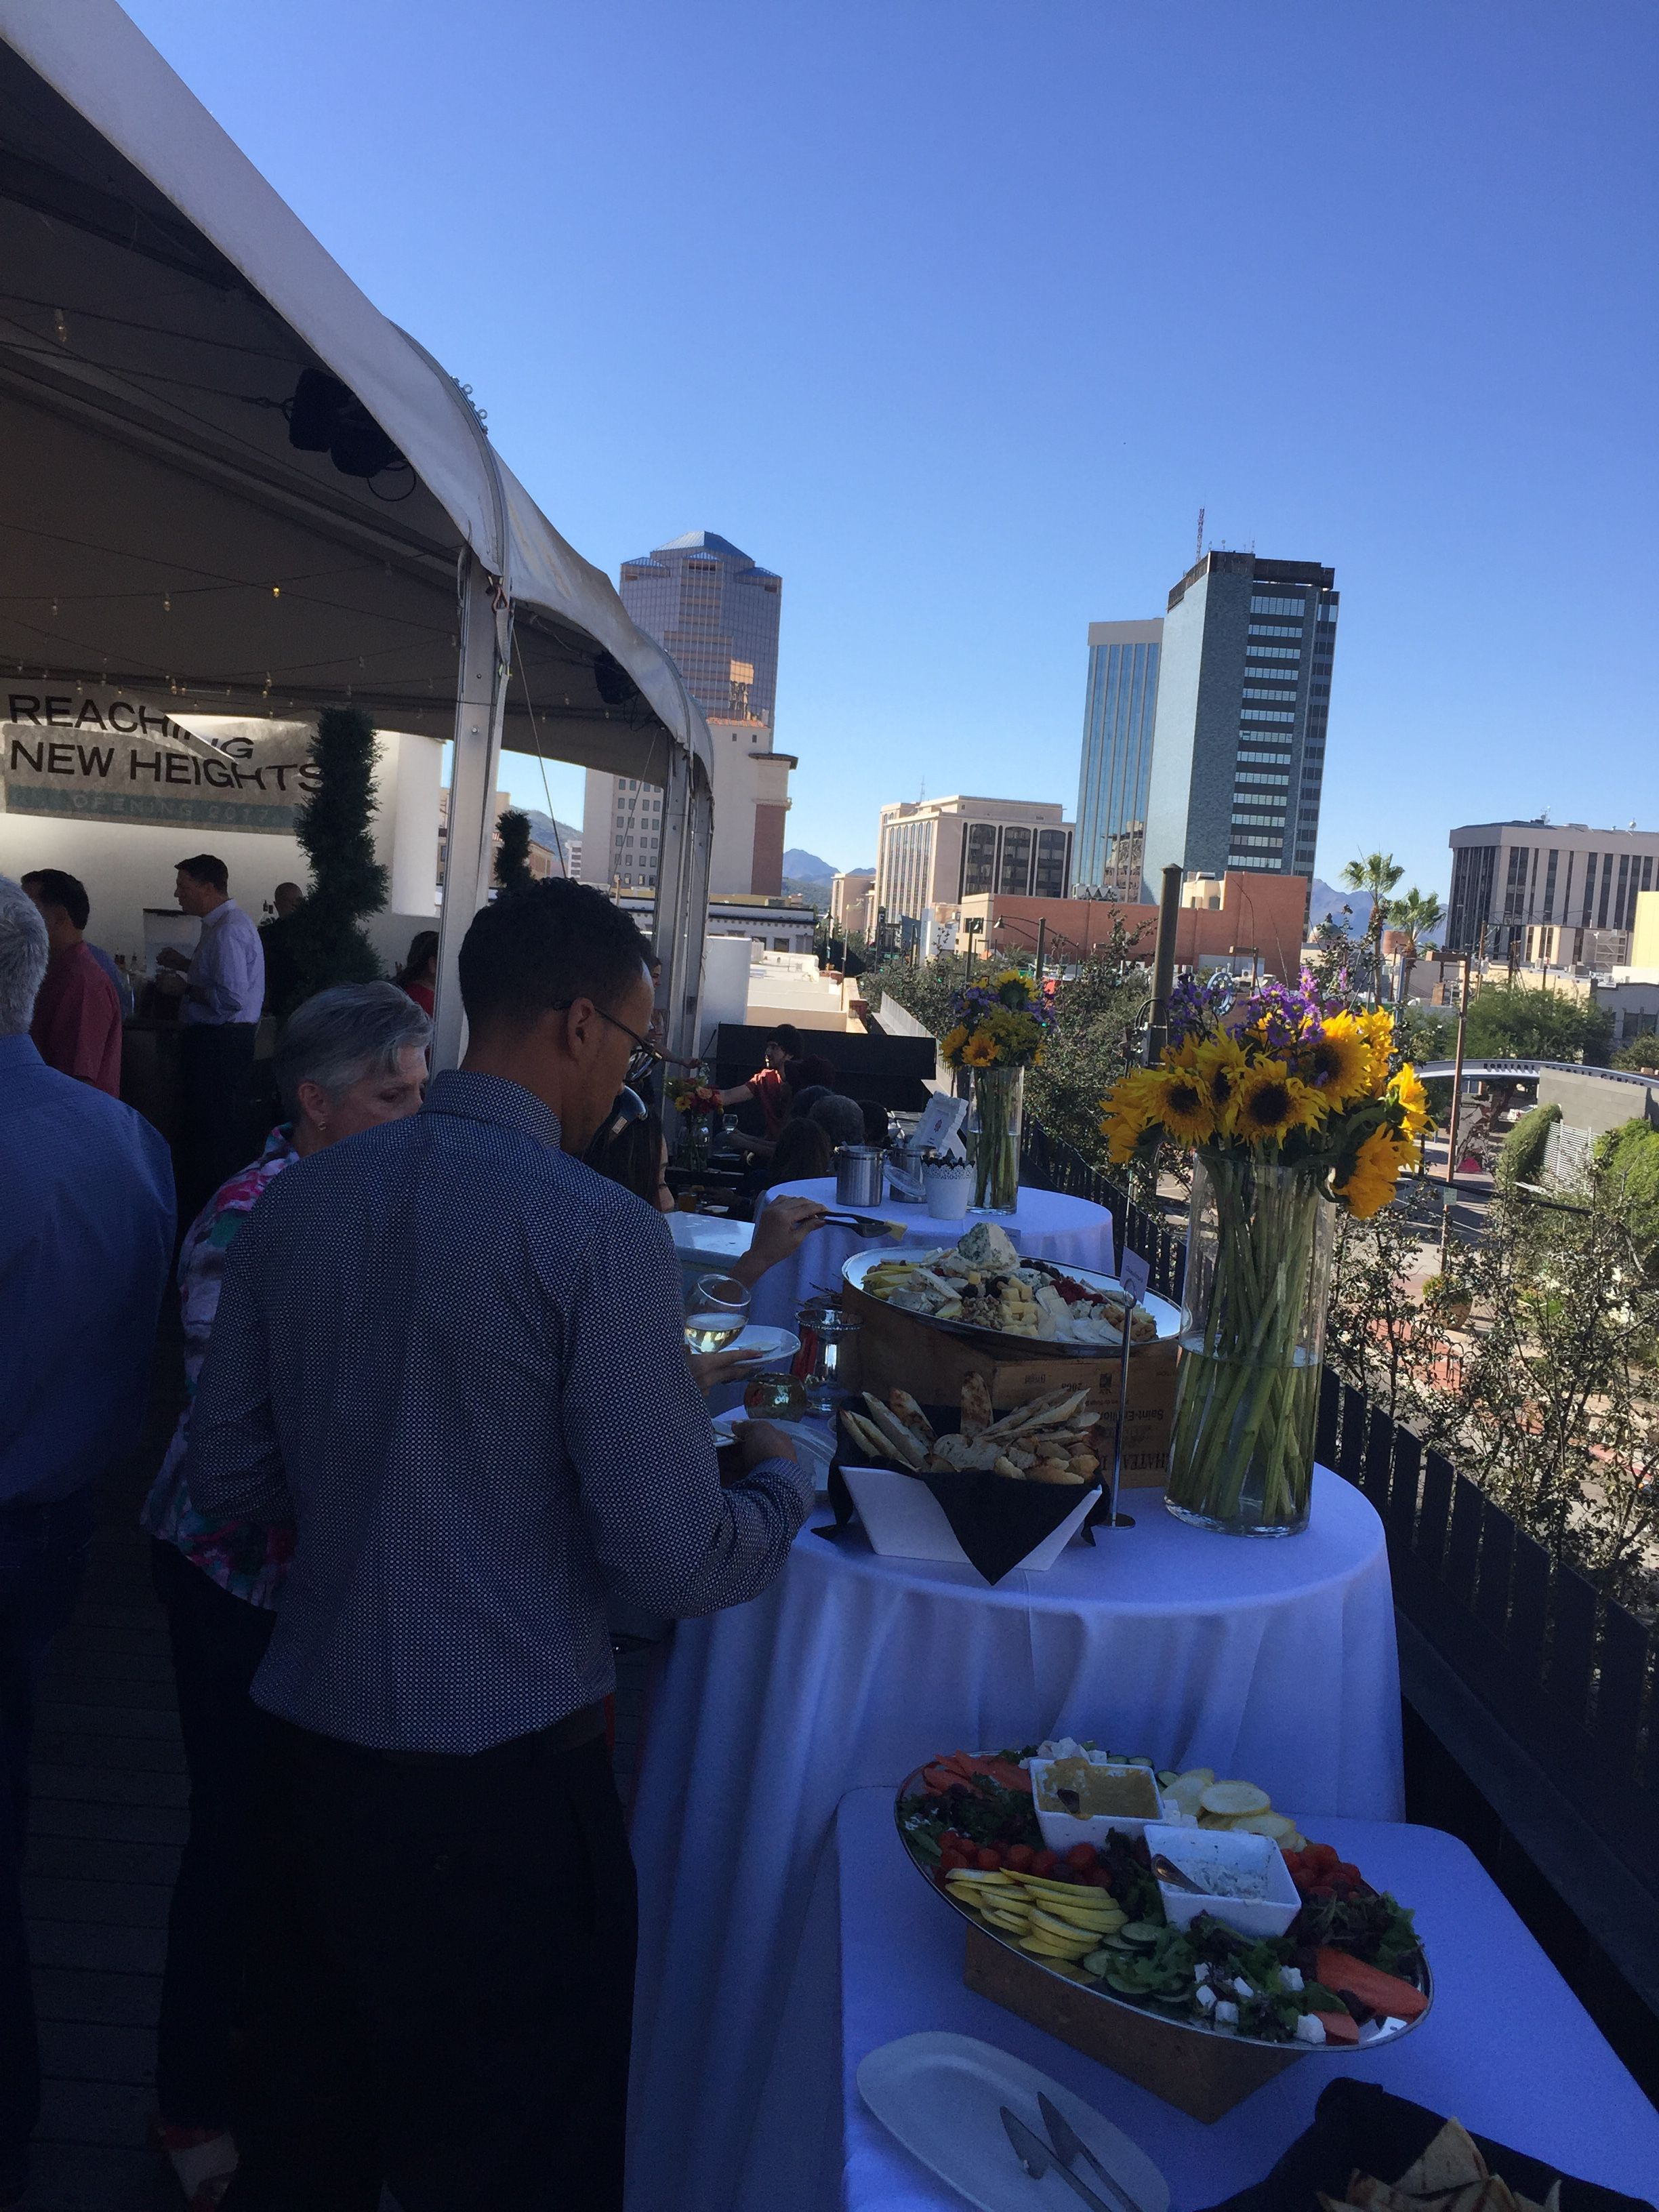 Halloween Events Arizona 2020 Sierra Vista And Tucson View of Downtown from Playground Lounge rooftop at Congress and